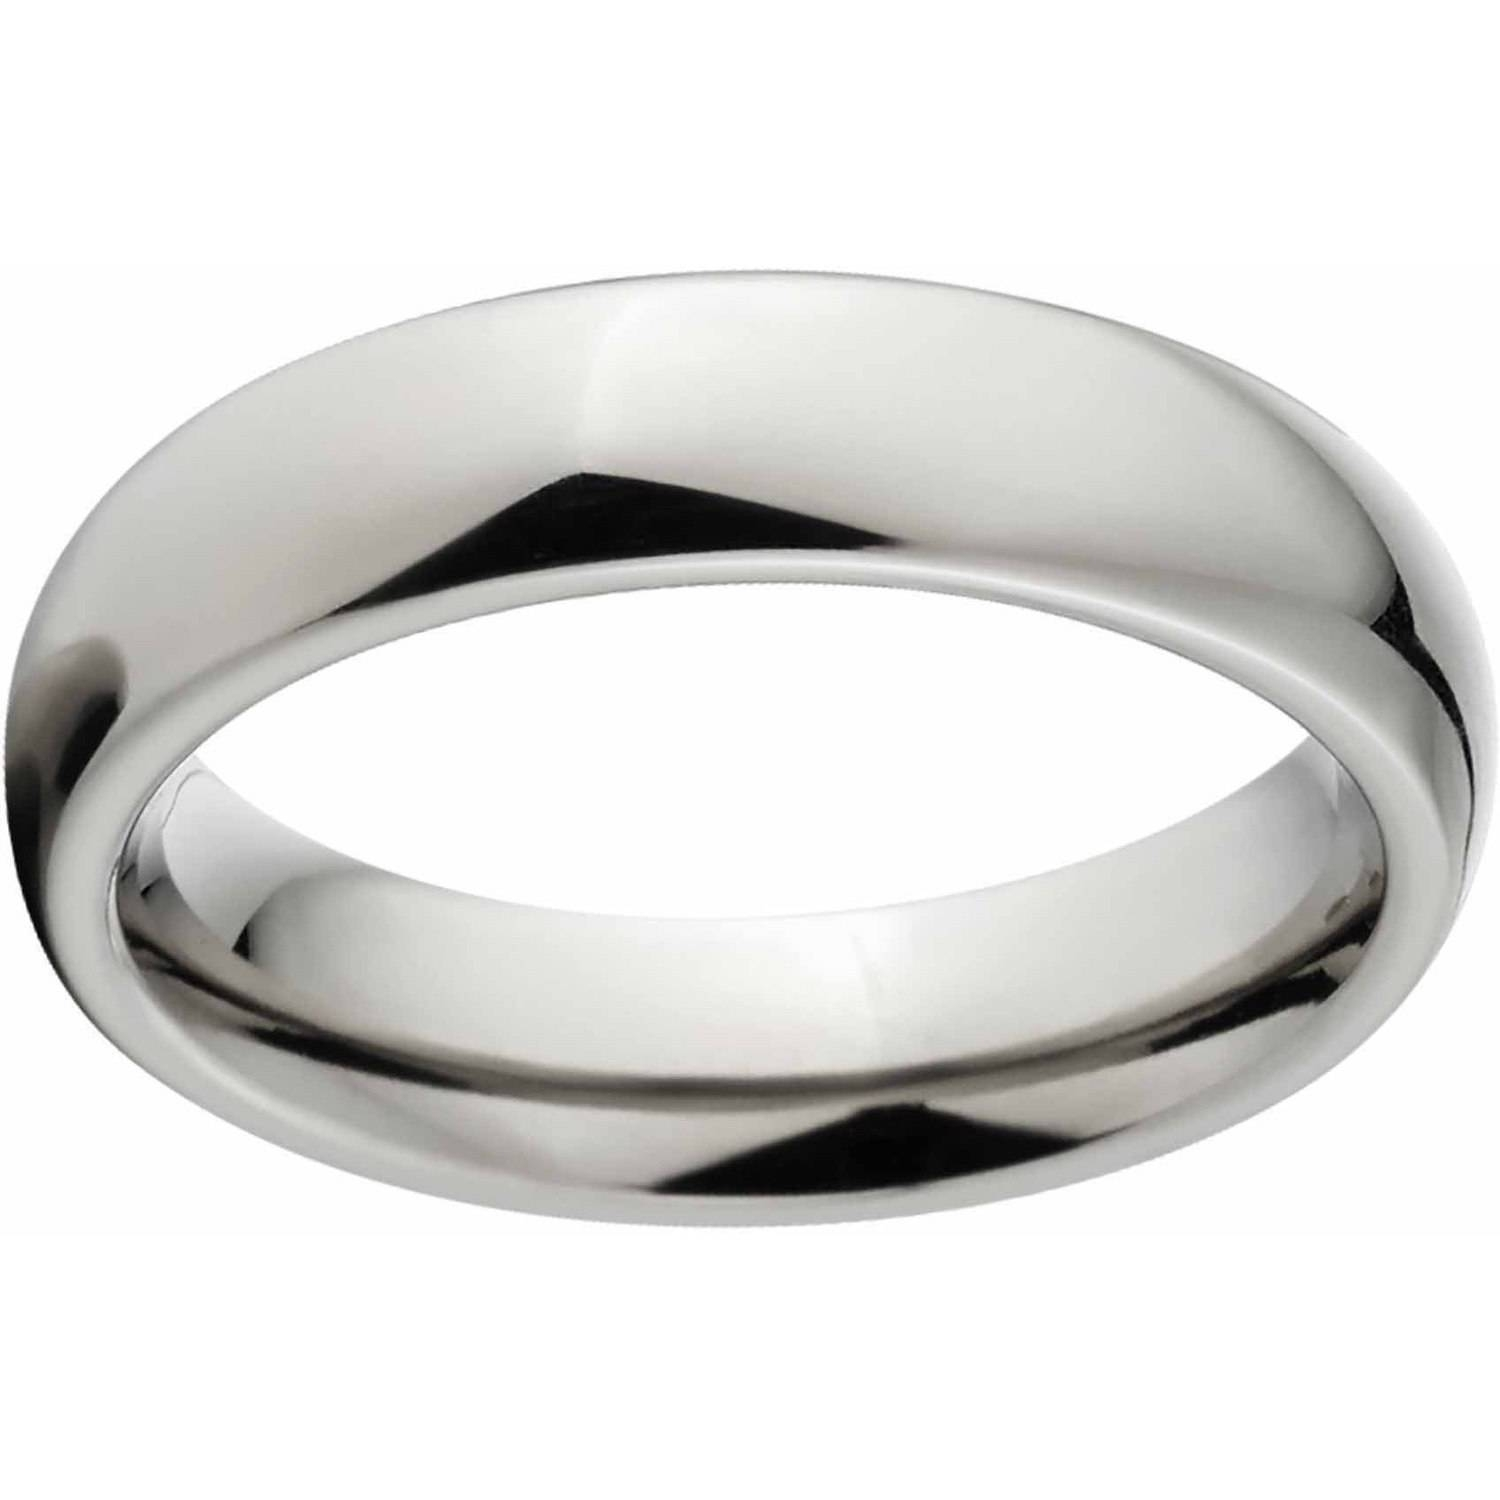 Polished 4Mm Titanium Wedding Band With Comfort Fit Design Pertaining To Wedding Bands At Walmart (View 10 of 15)